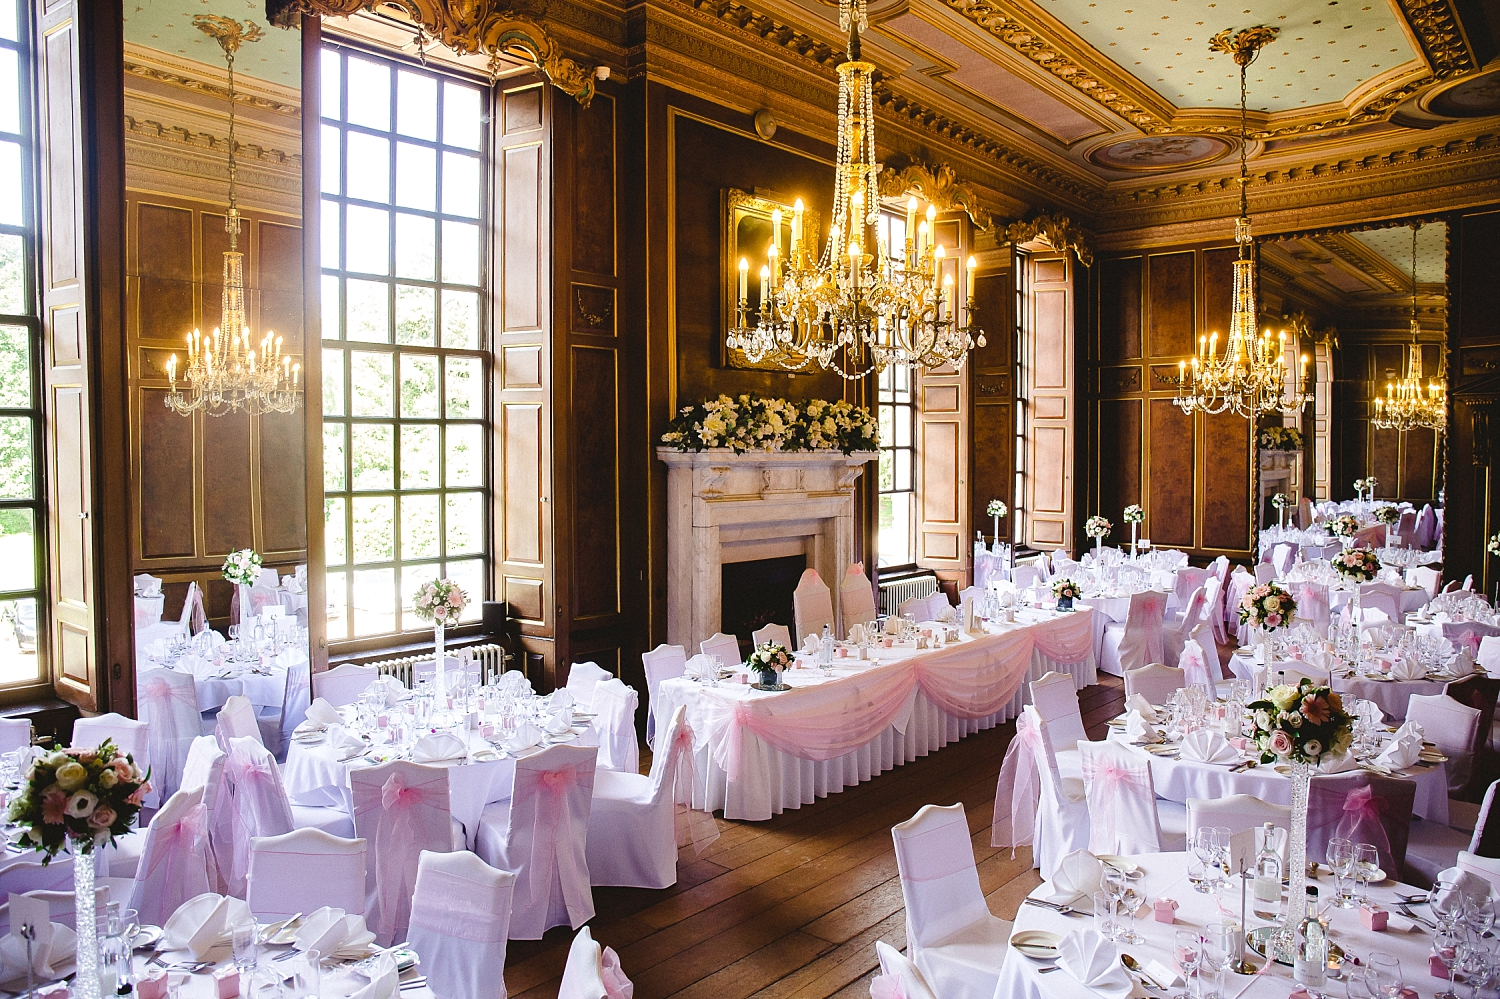 Gosfield Hall Wedding - Reception Room